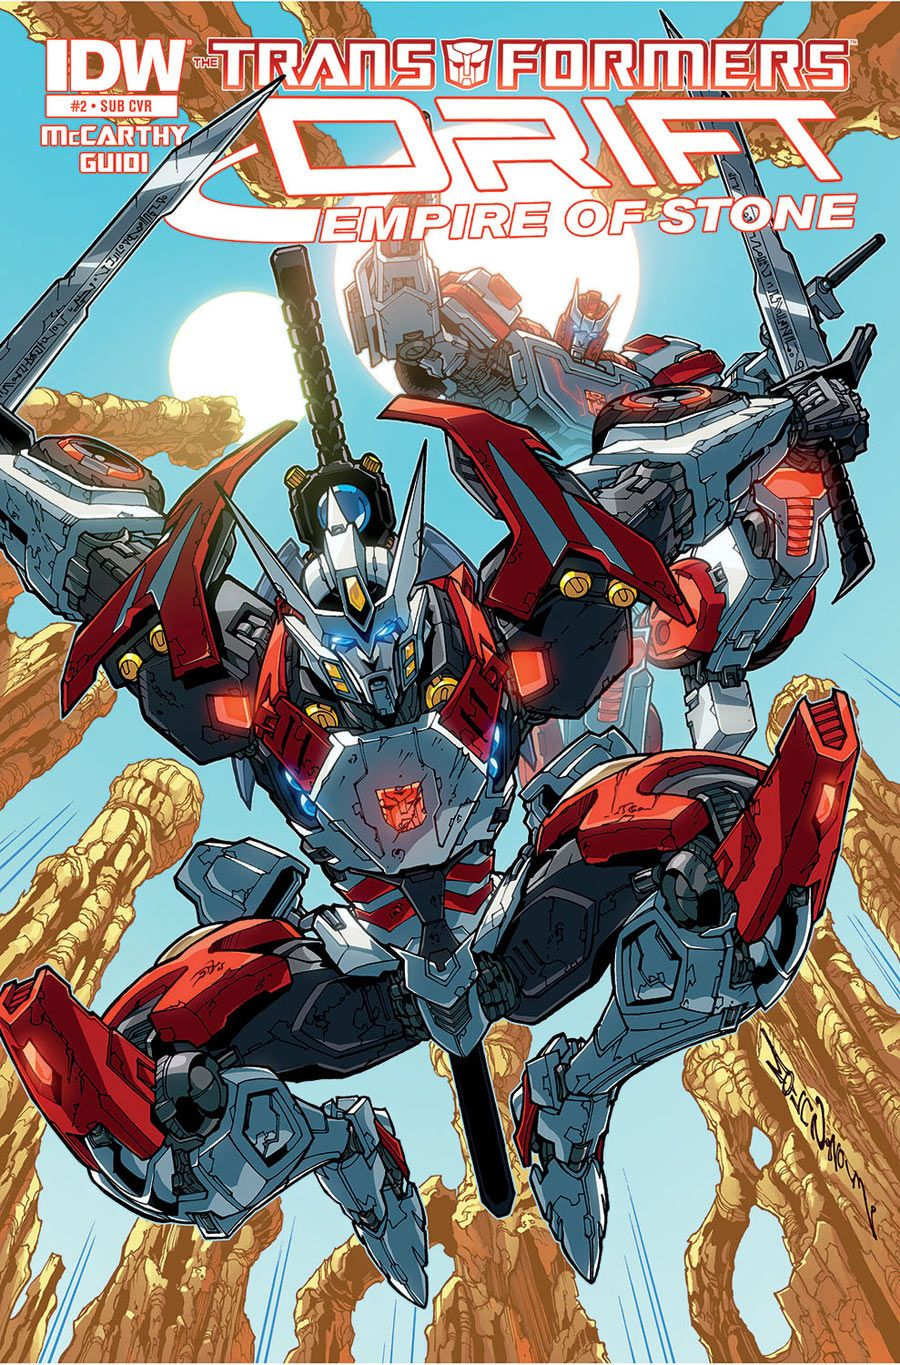 transformers drift empire of stone 2 of 4 search home comic